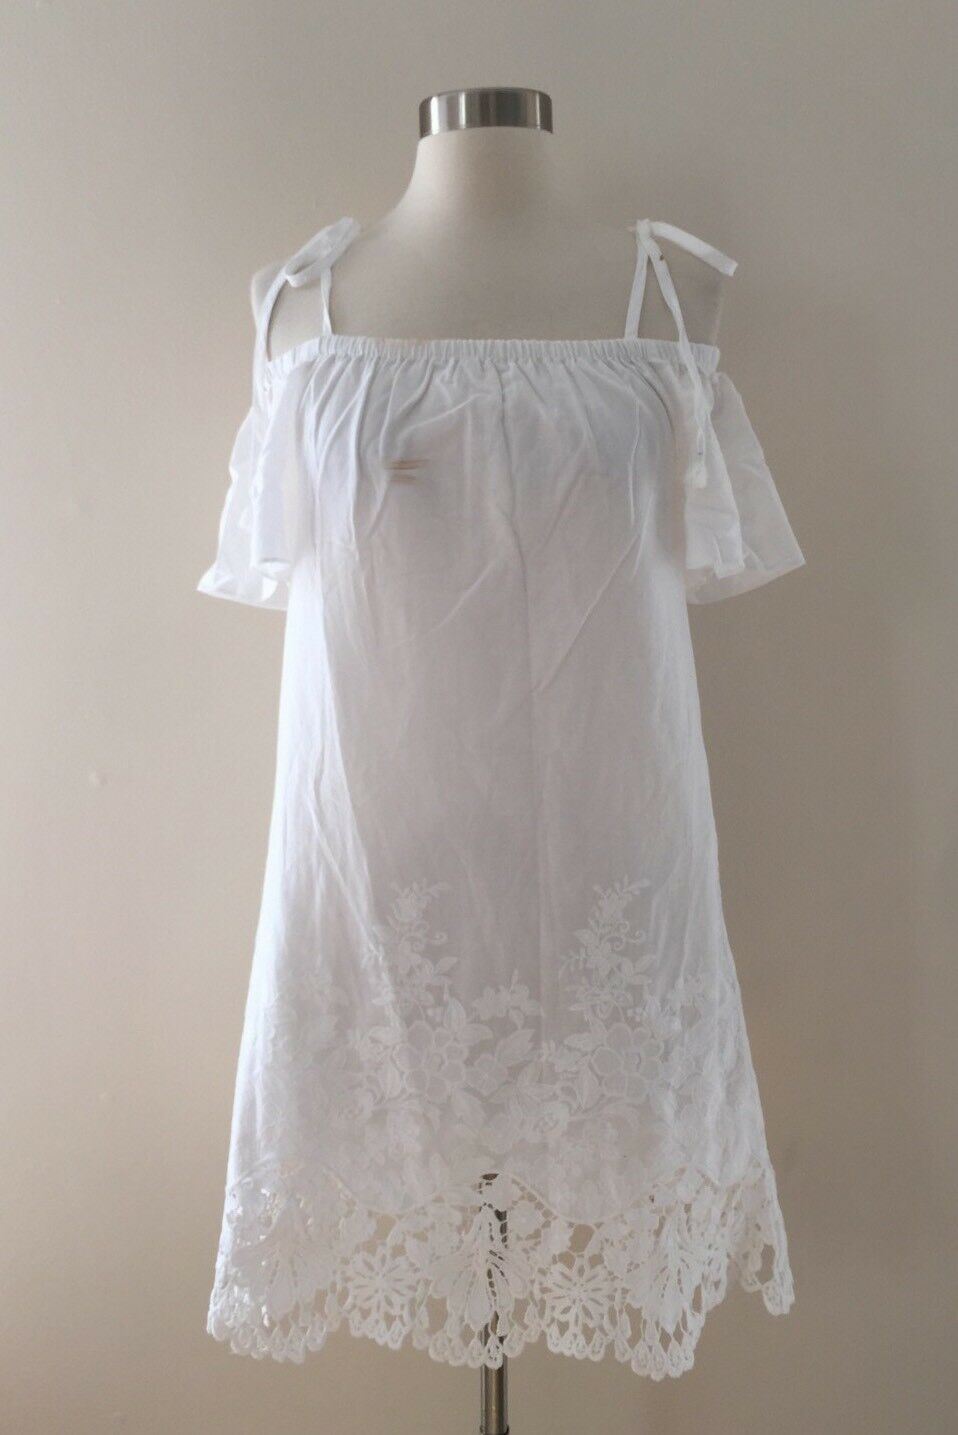 New Madewell JCREW Eyelet Cold-Shoulder Dress White Size XS G6075